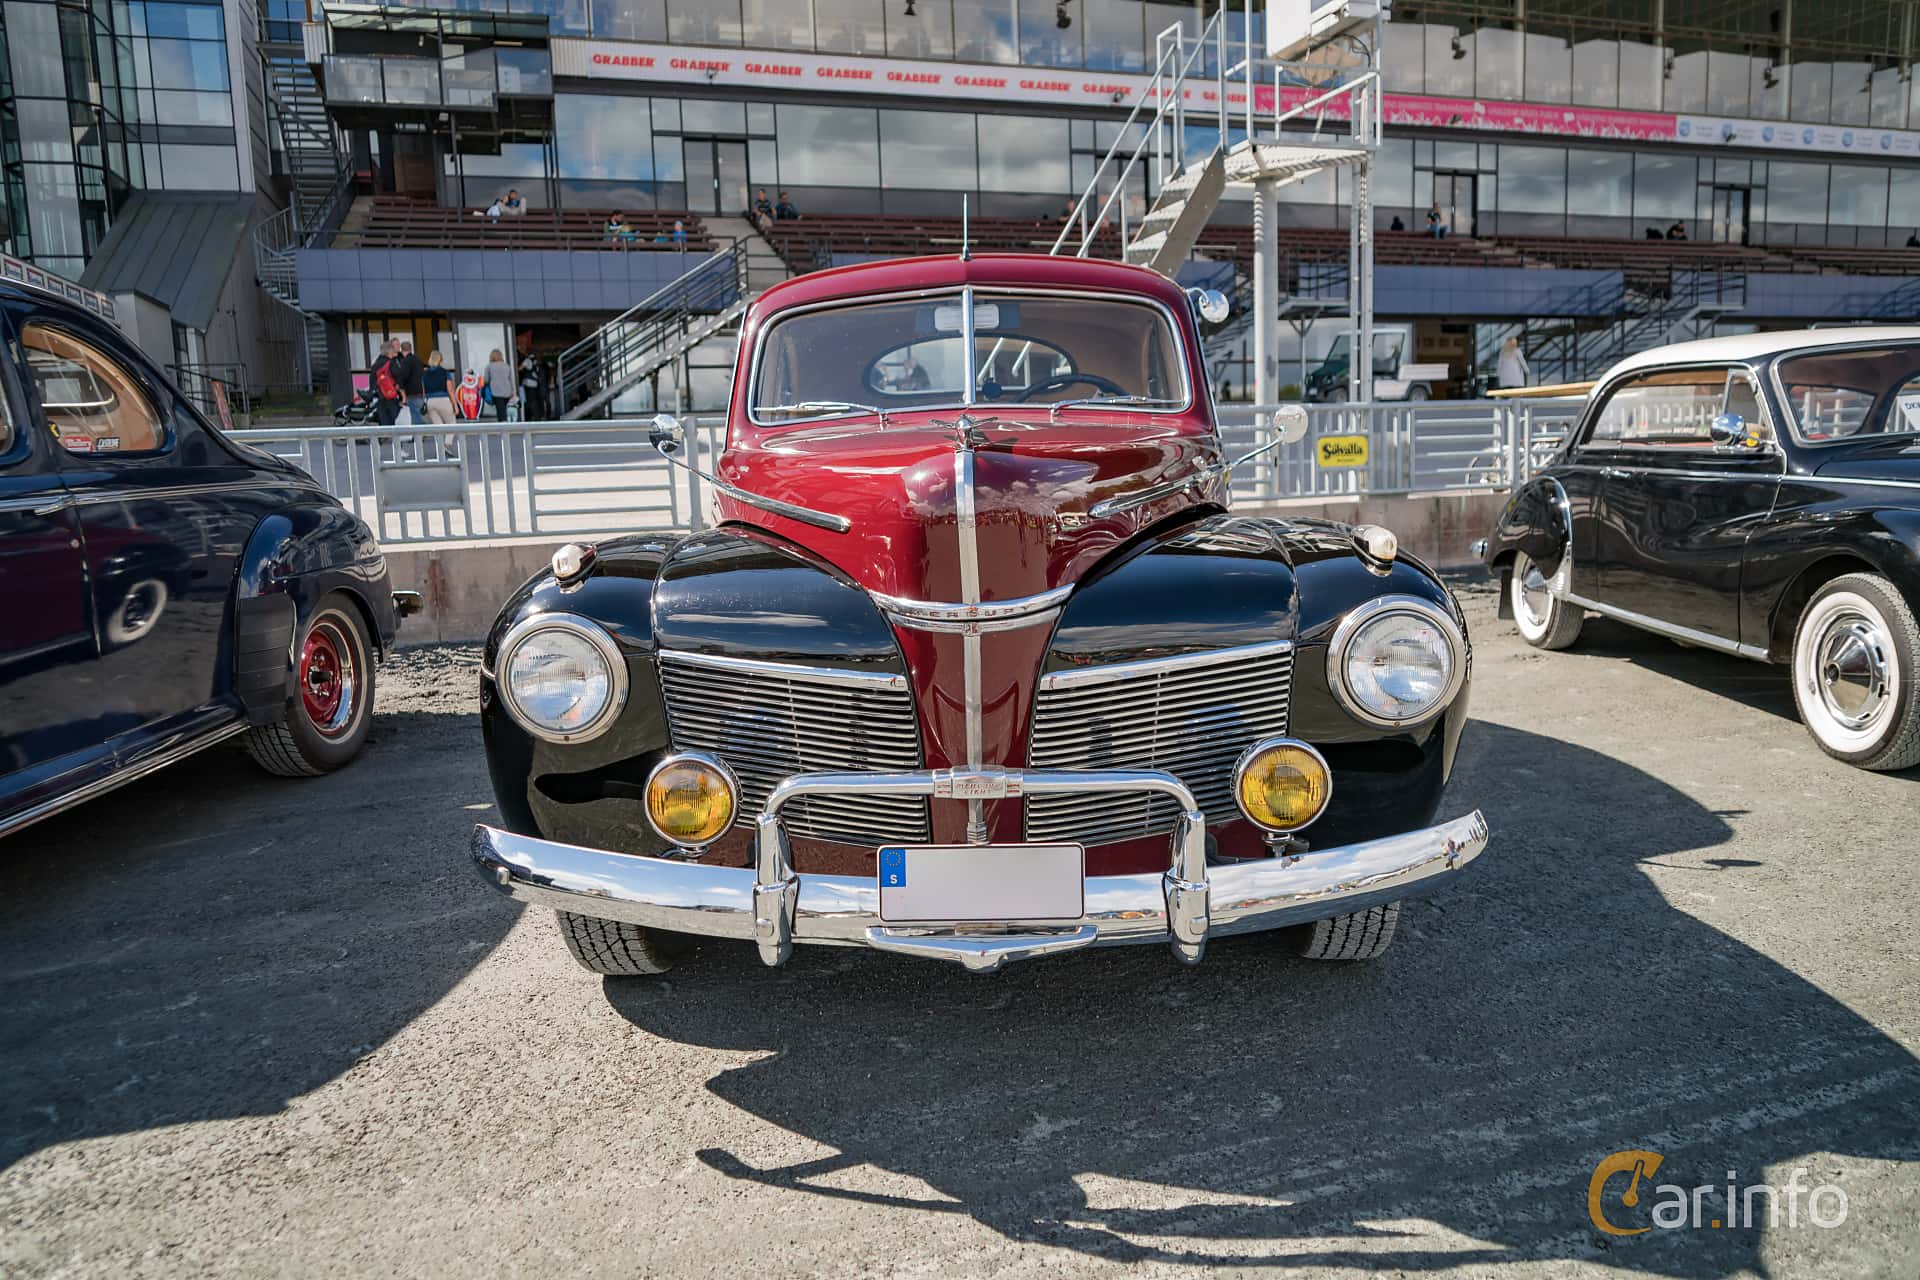 Tagen P Wheels Nationals Stockholm 2017 1941 Mercury Eight Coupe Front 2 428184